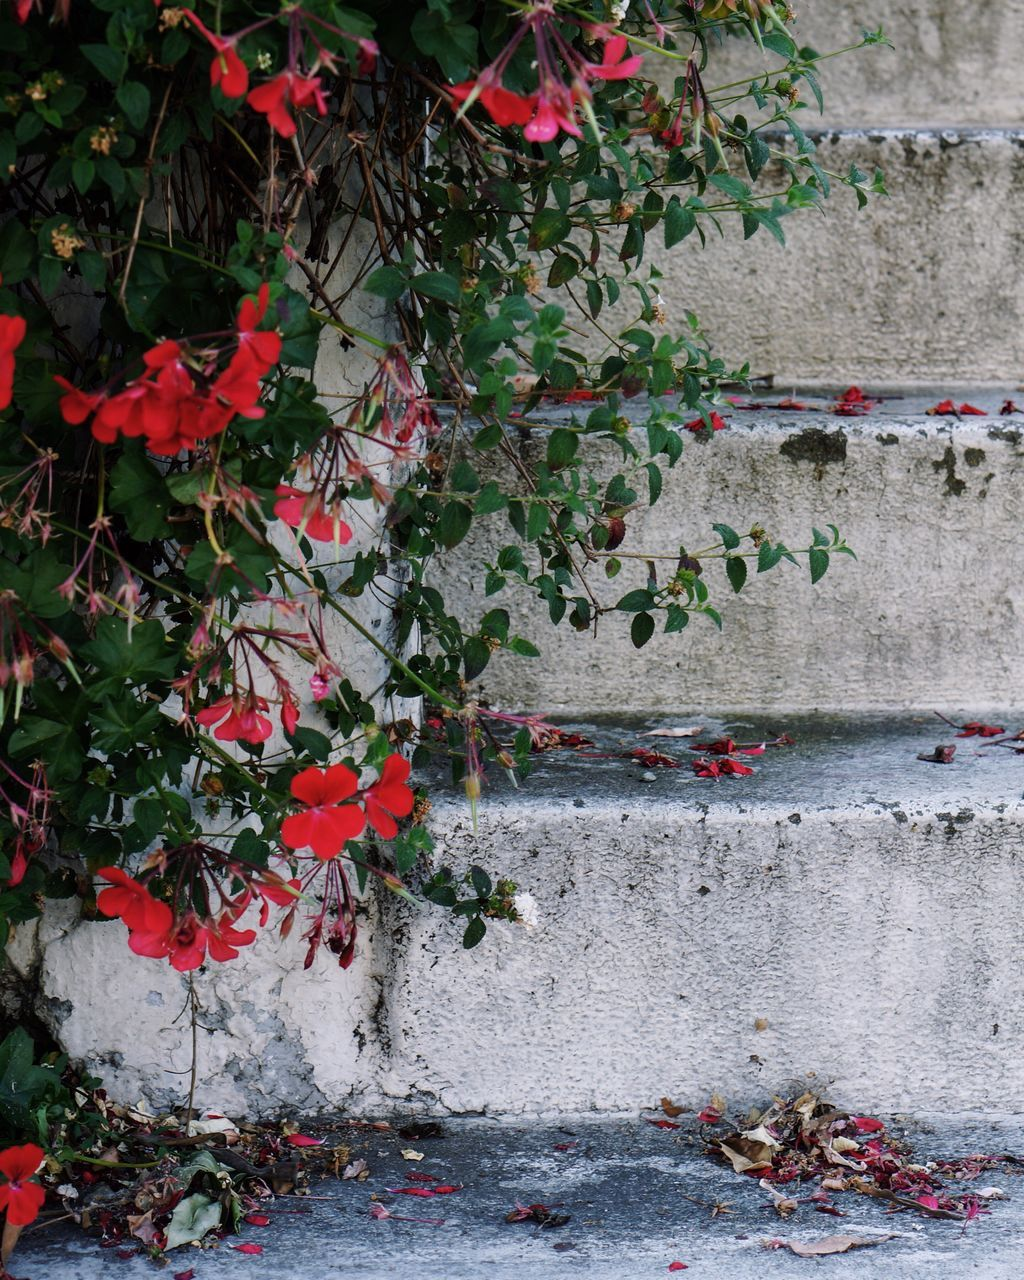 growth, flower, plant, red, nature, leaf, no people, outdoors, ivy, day, beauty in nature